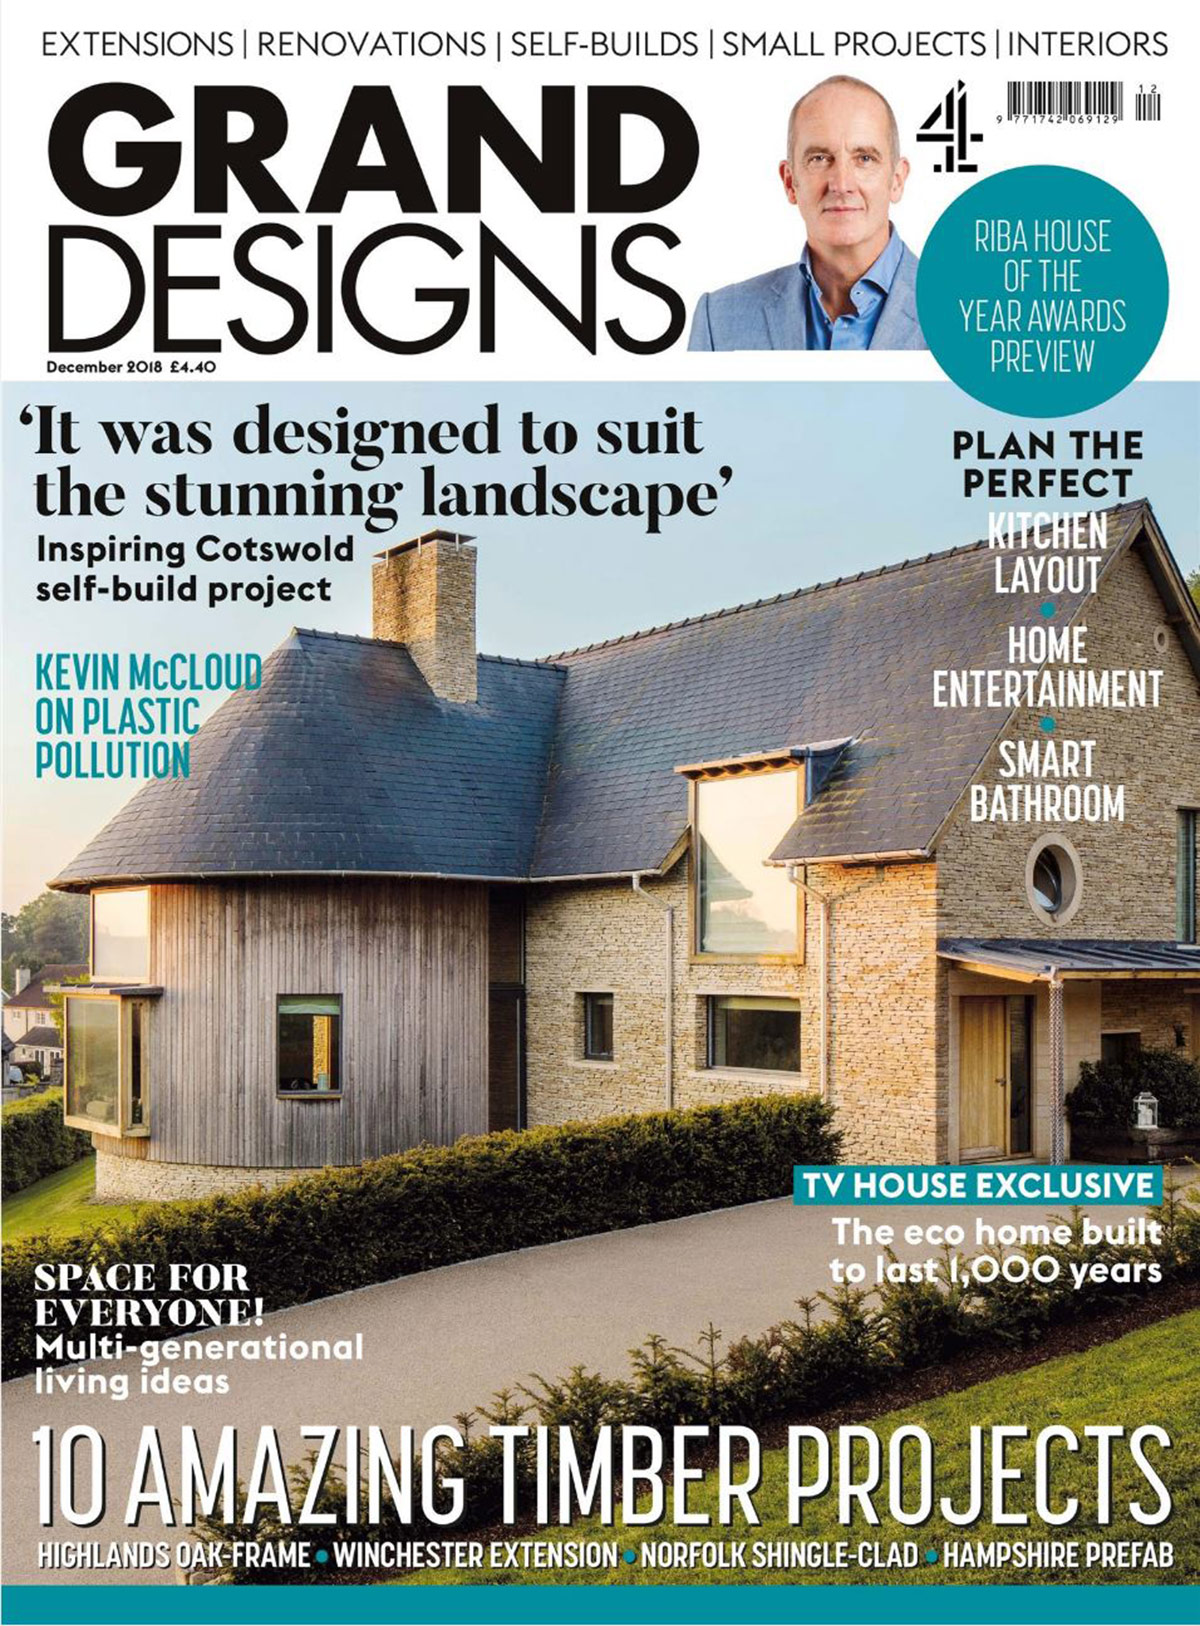 Front cover of Grand designs Magazine featuring Arosfa architectural project